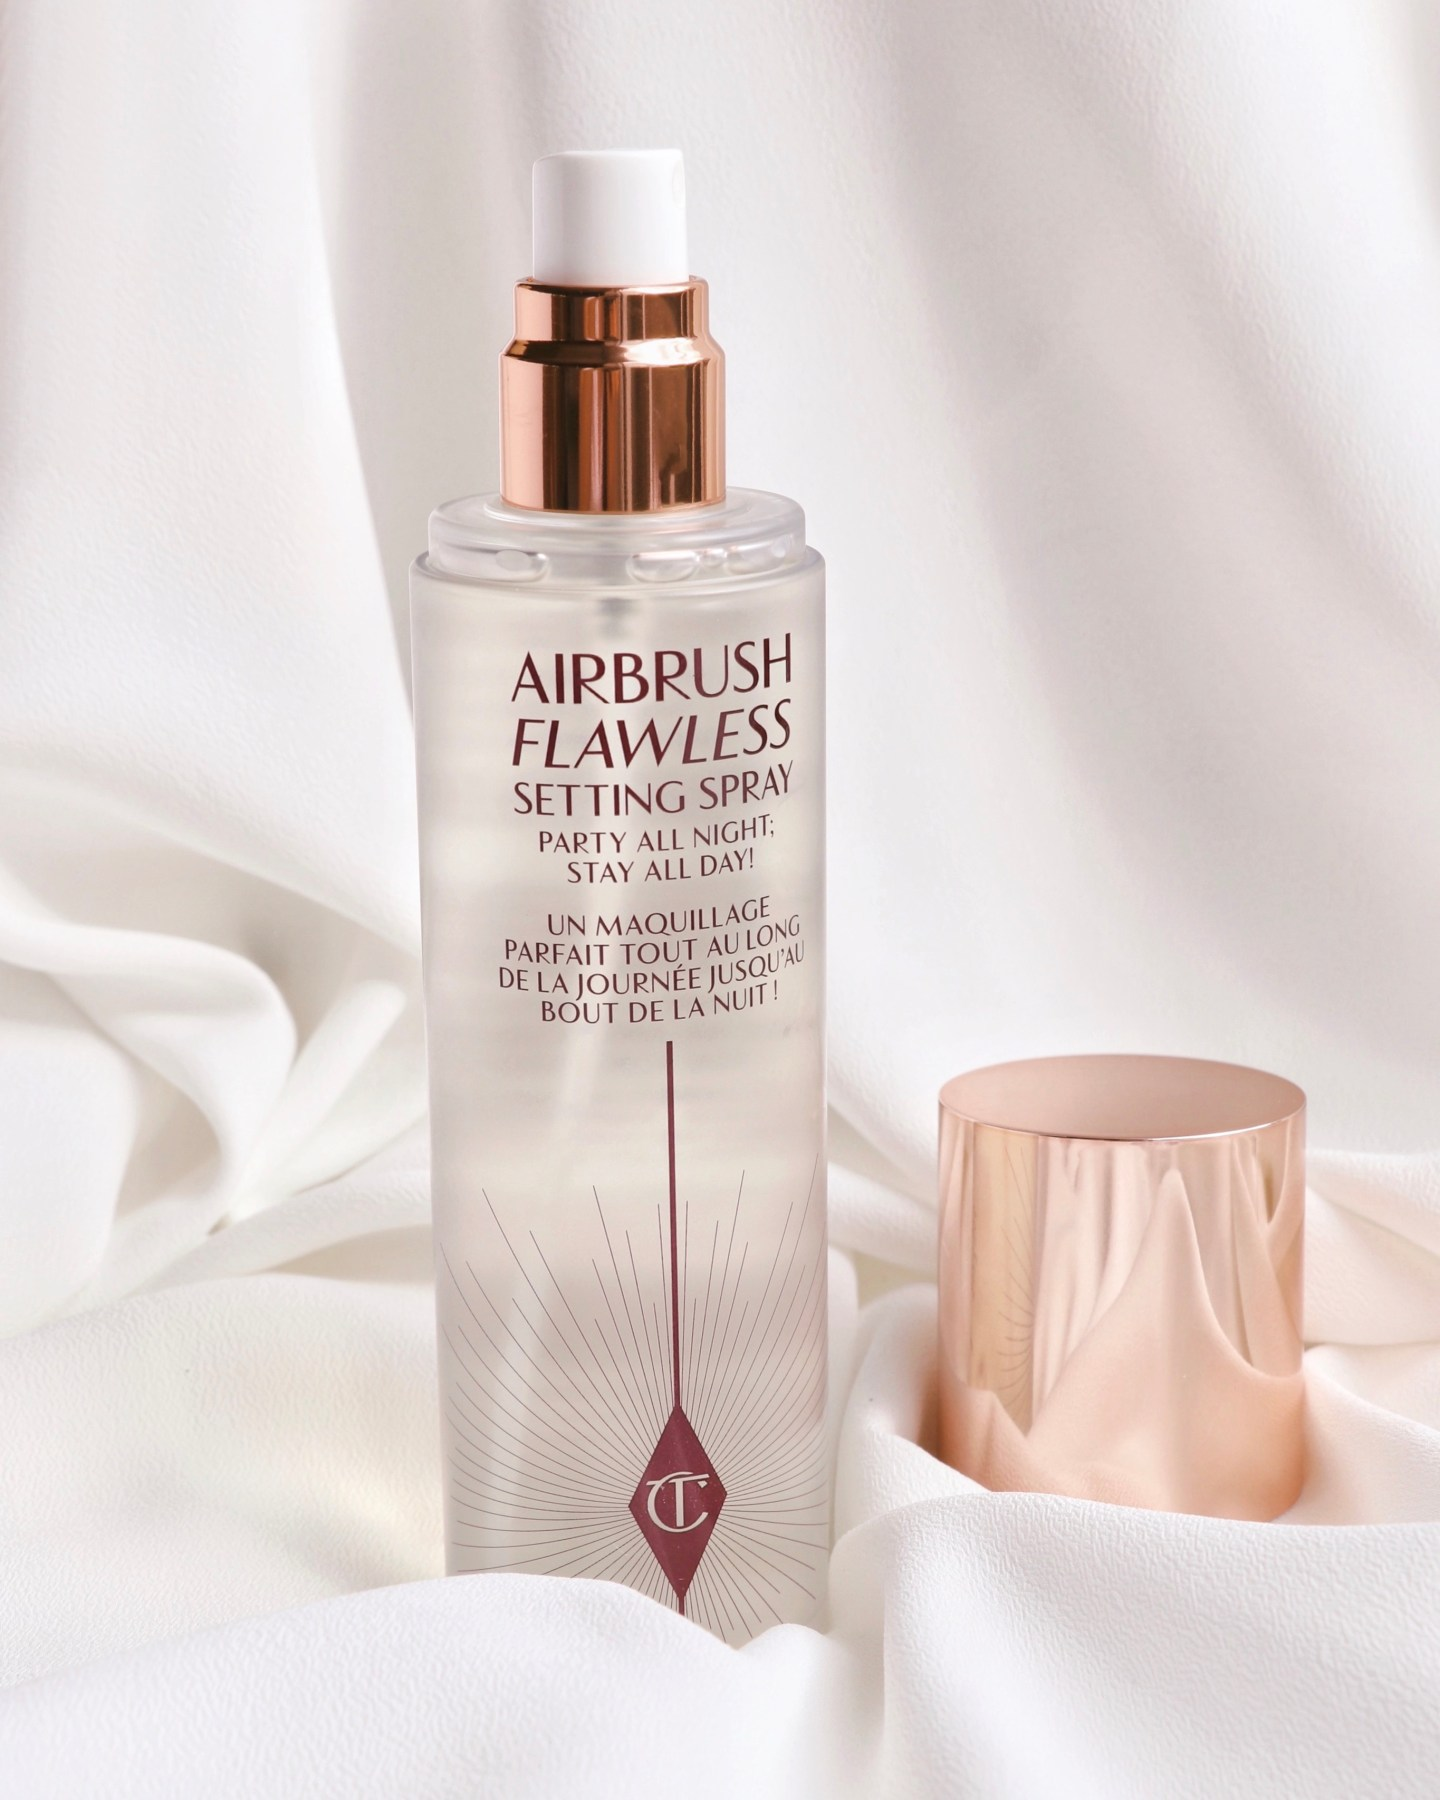 NEW Charlotte Tilbury Airbrush Flawless Setting Spray Ingredient List